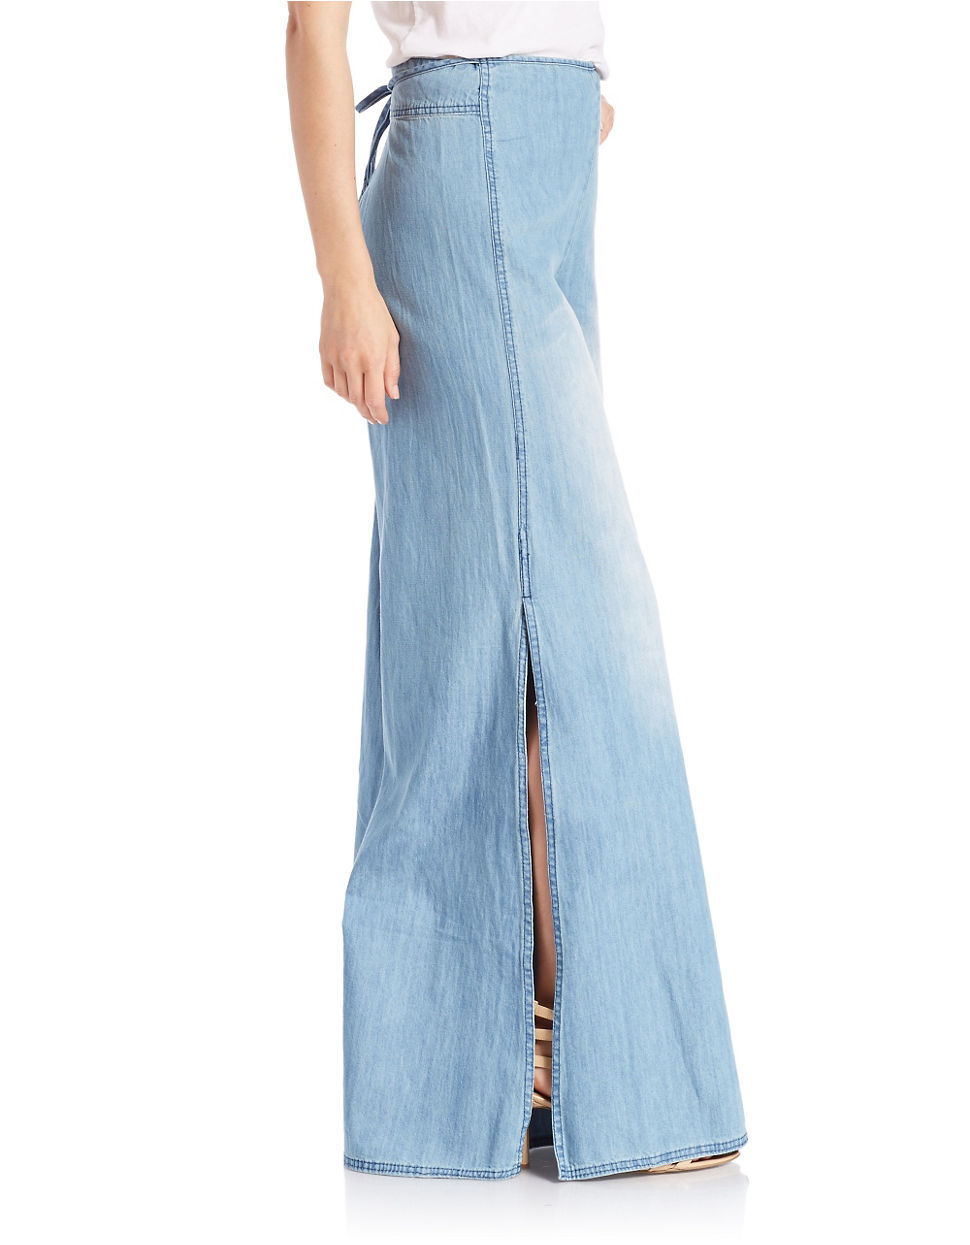 Free people Apron Elephant Bell-bottom Jeans- Back Town Blue in ...